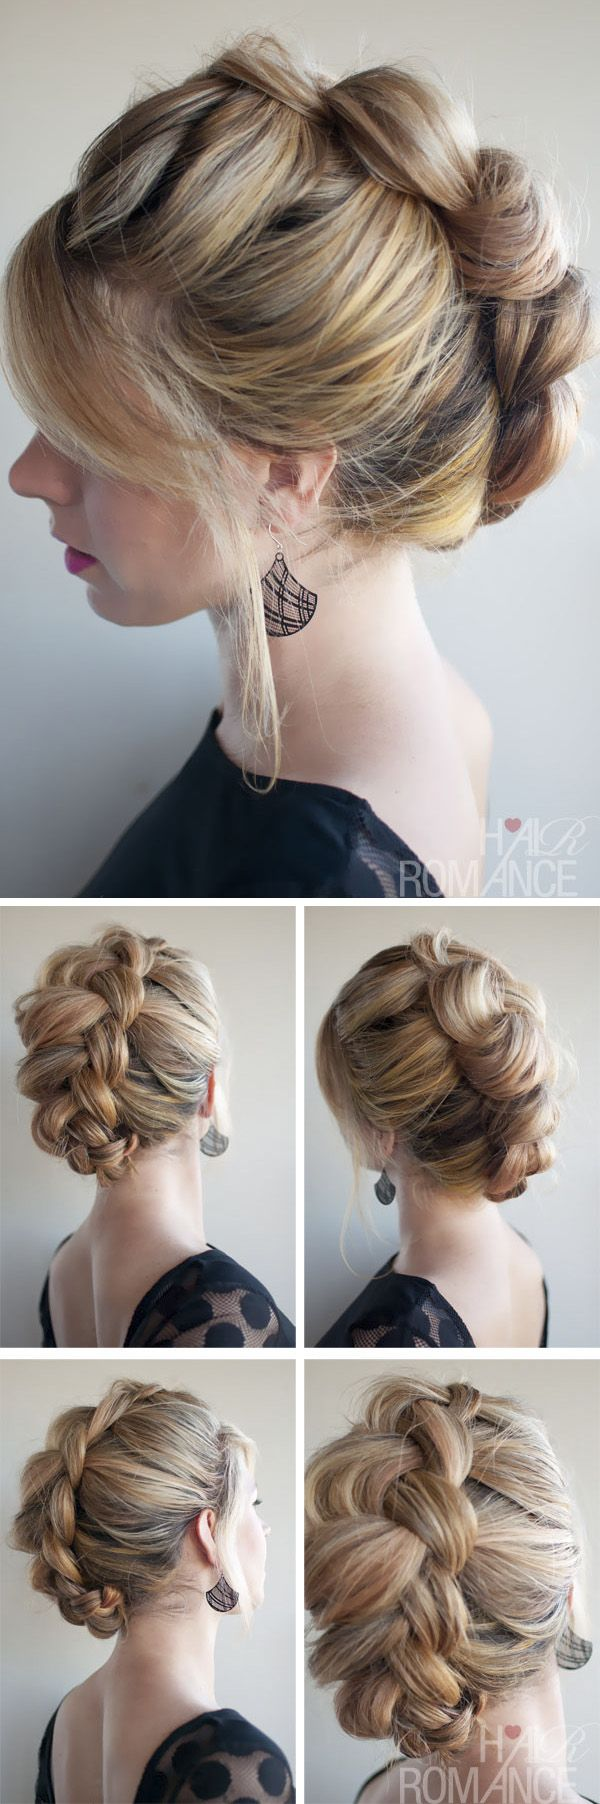 Elsa Hairstyle For Girls 2015 elsa_hair_style_for_girls2015